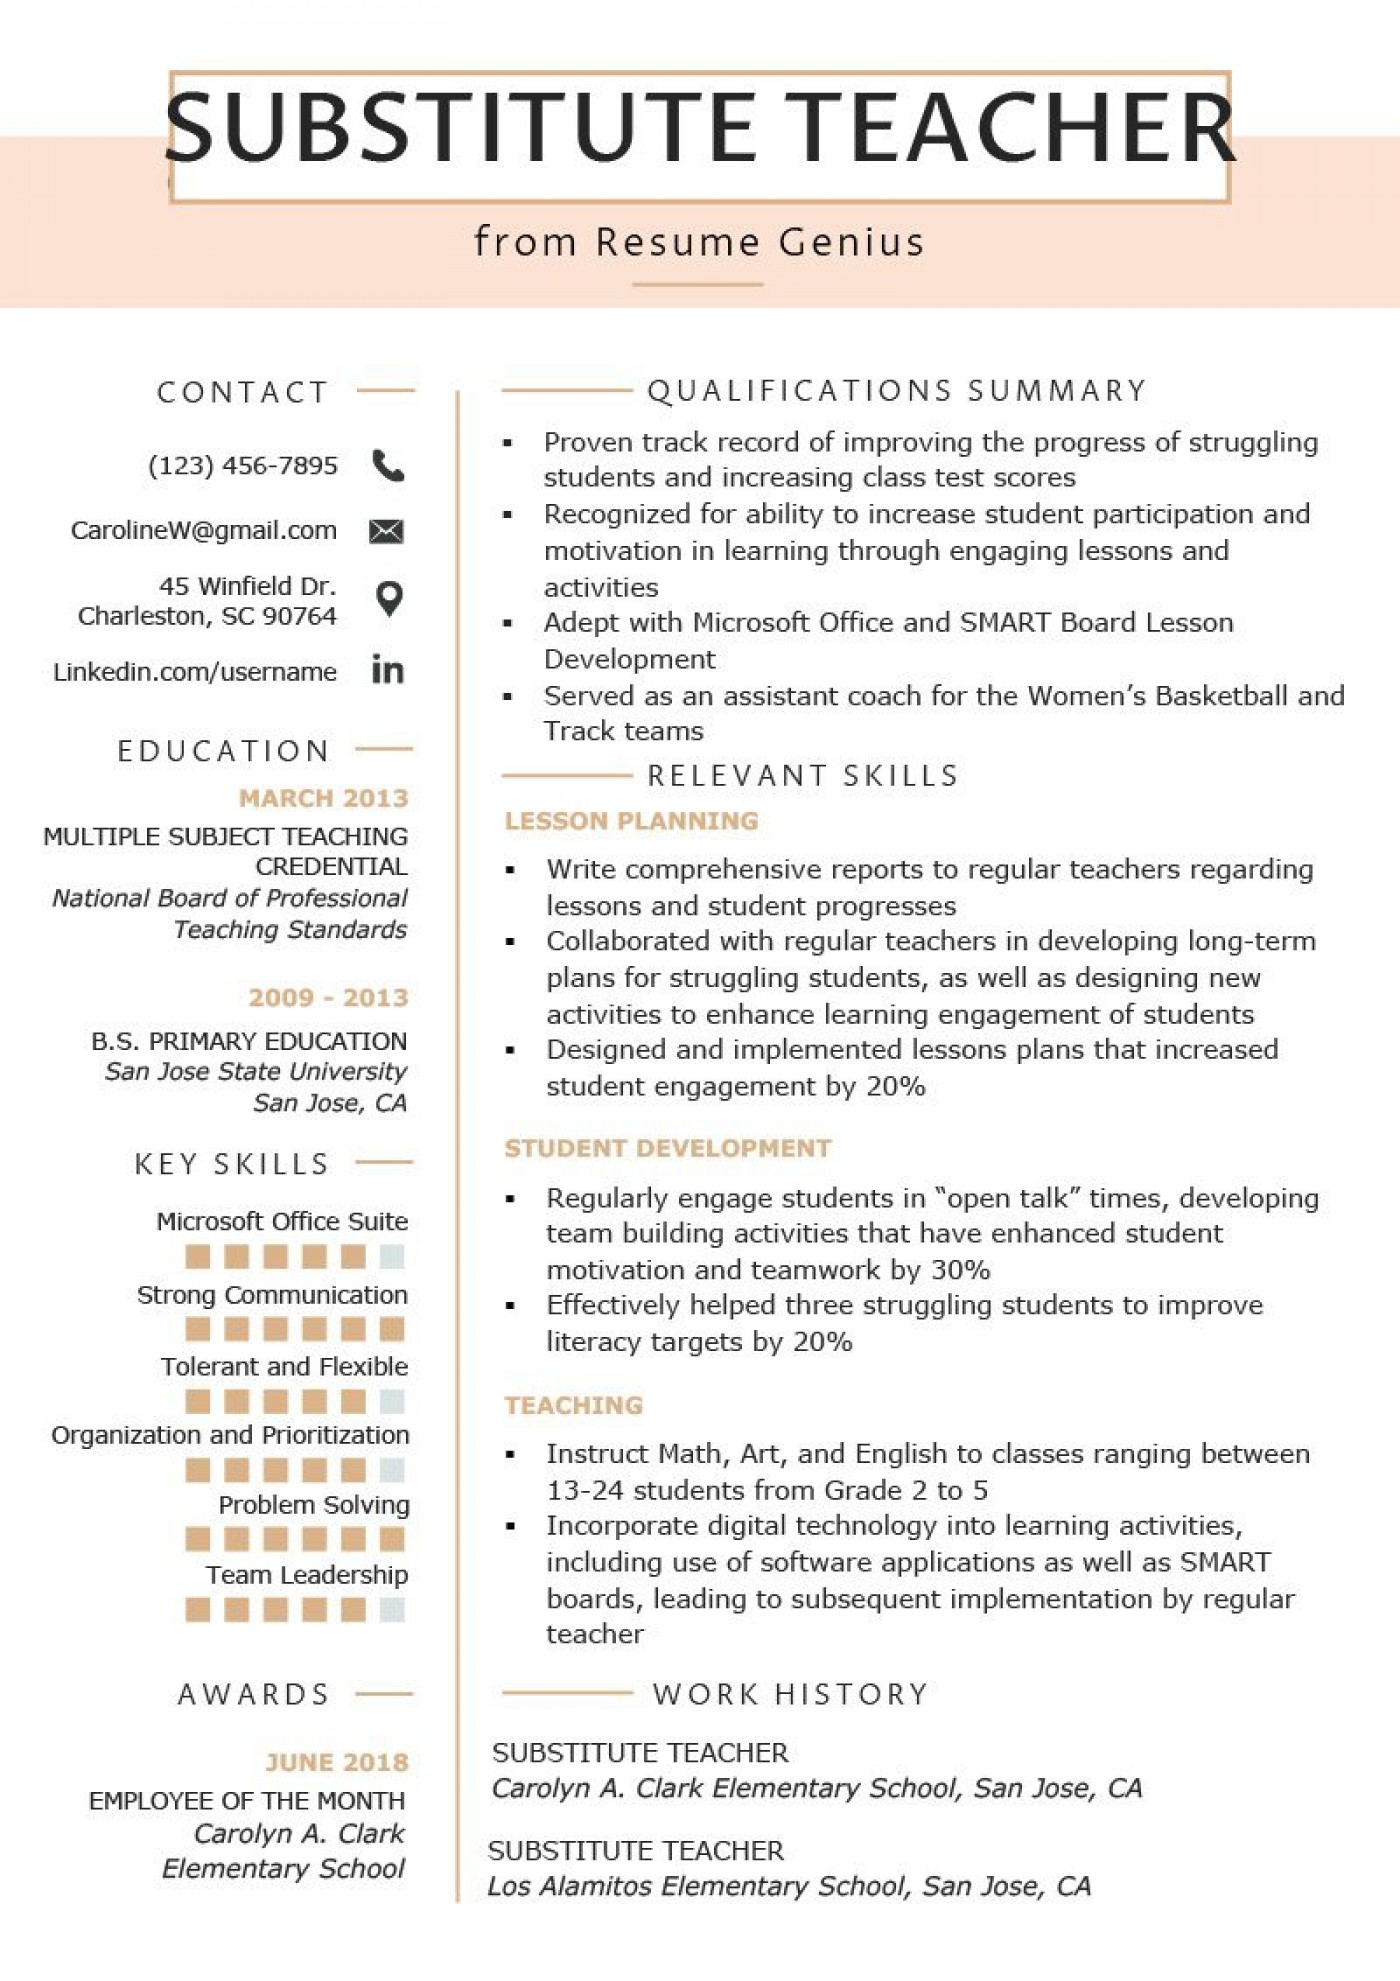 002 Incredible Resume Template For Teacher Picture  Australia Microsoft Word Sample1400